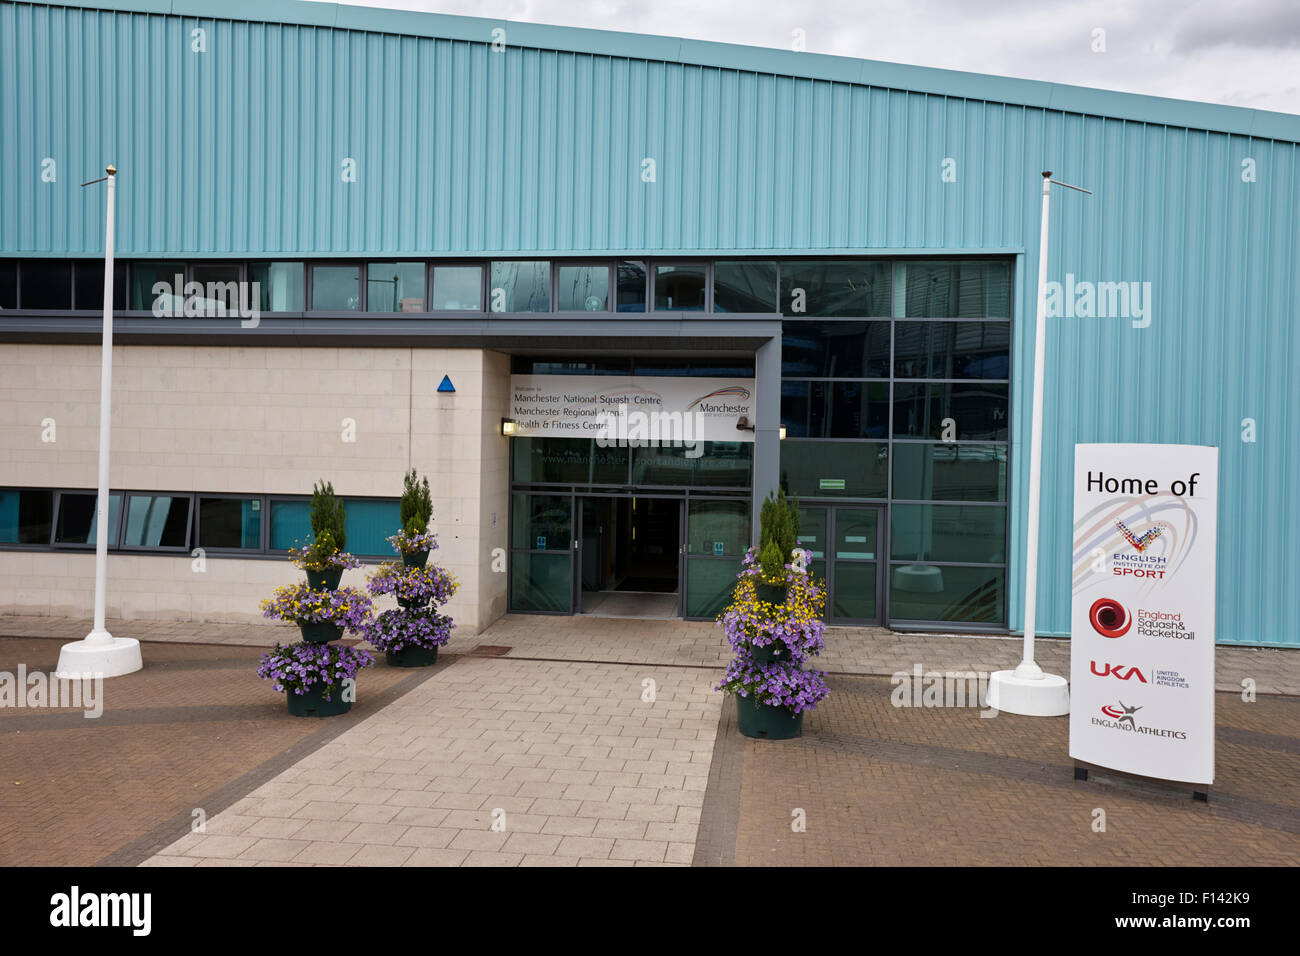 Manchester national squash centre and regional arena uk - Stock Image